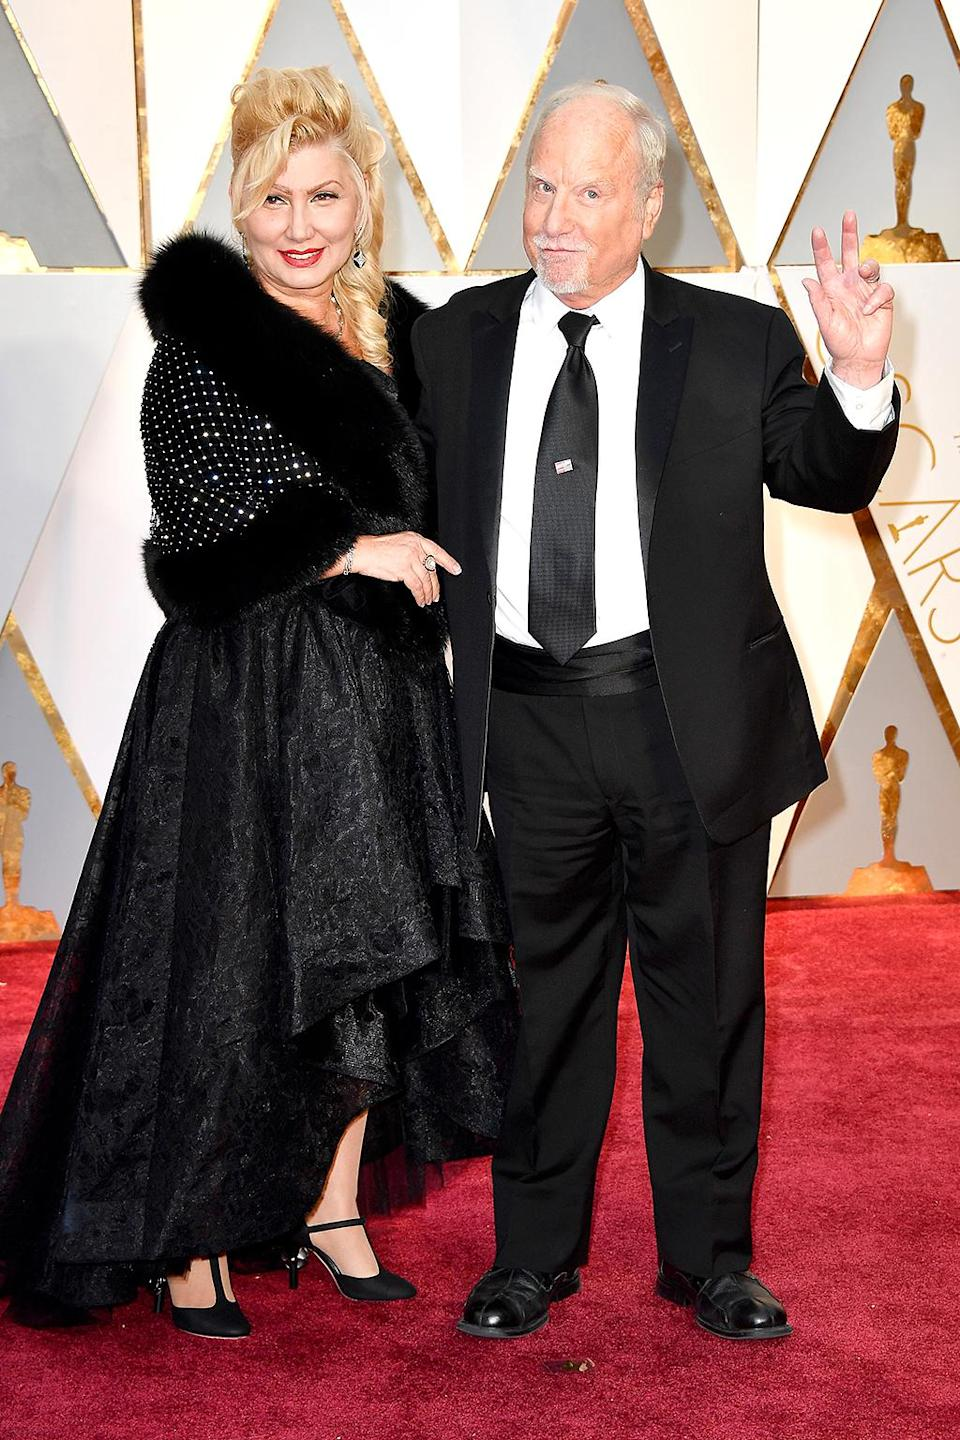 <p>Svetlana Erokhin and Richard Dreyfuss attend the 89th Annual Academy Awards at Hollywood & Highland Center on February 26, 2017 in Hollywood, California. (Photo by Frazer Harrison/Getty Images) </p>